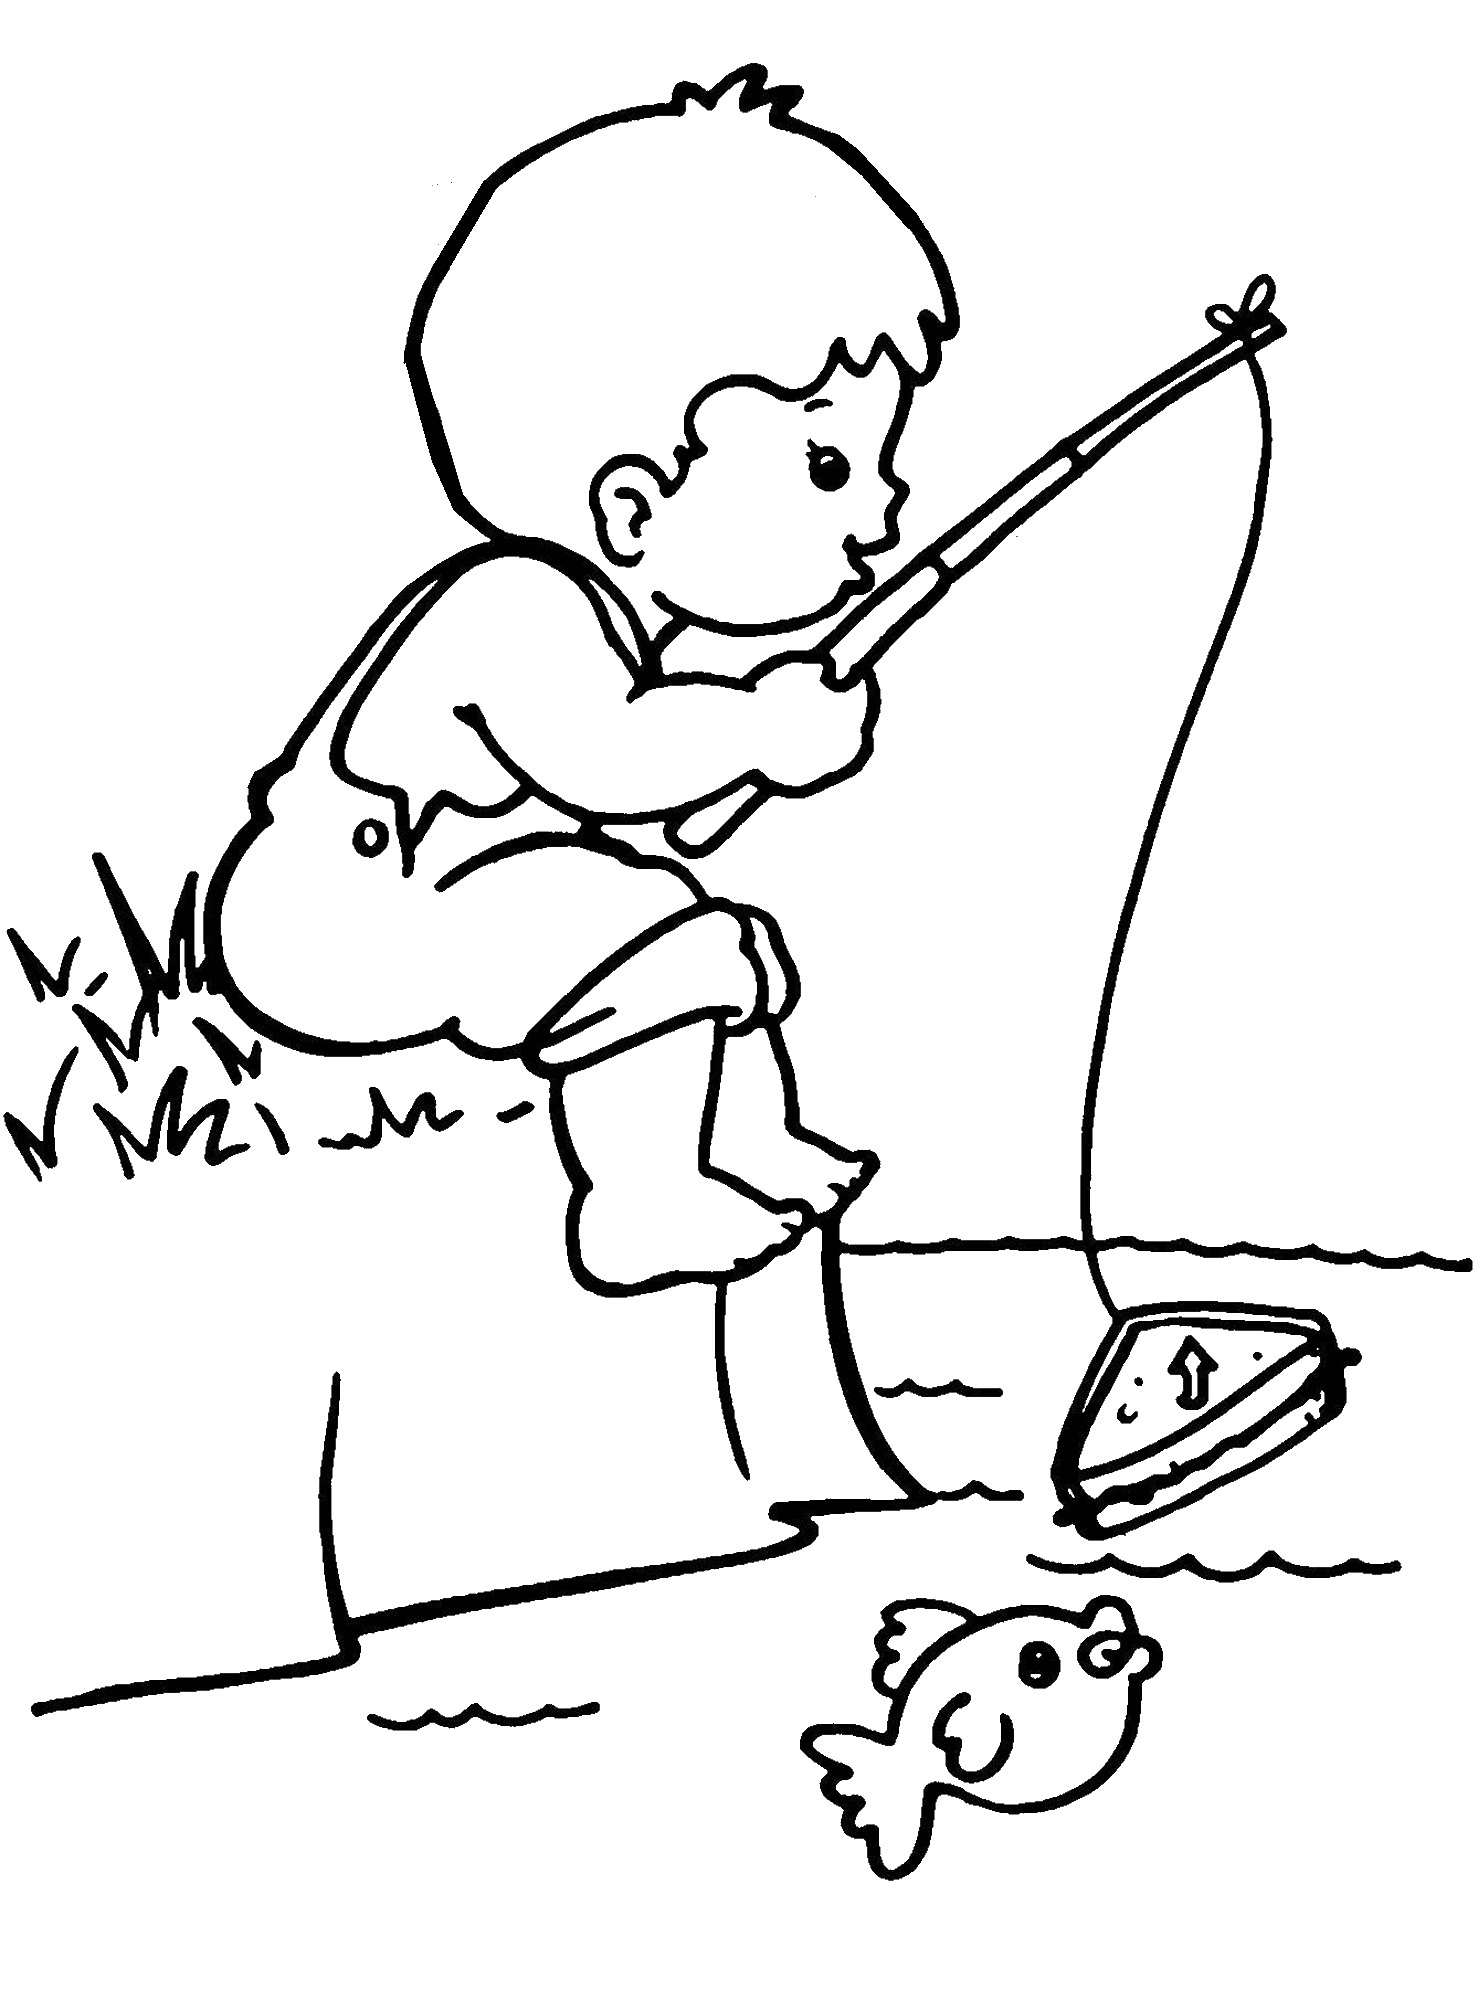 boy coloring page free printable boy coloring pages for kids page boy coloring 1 1